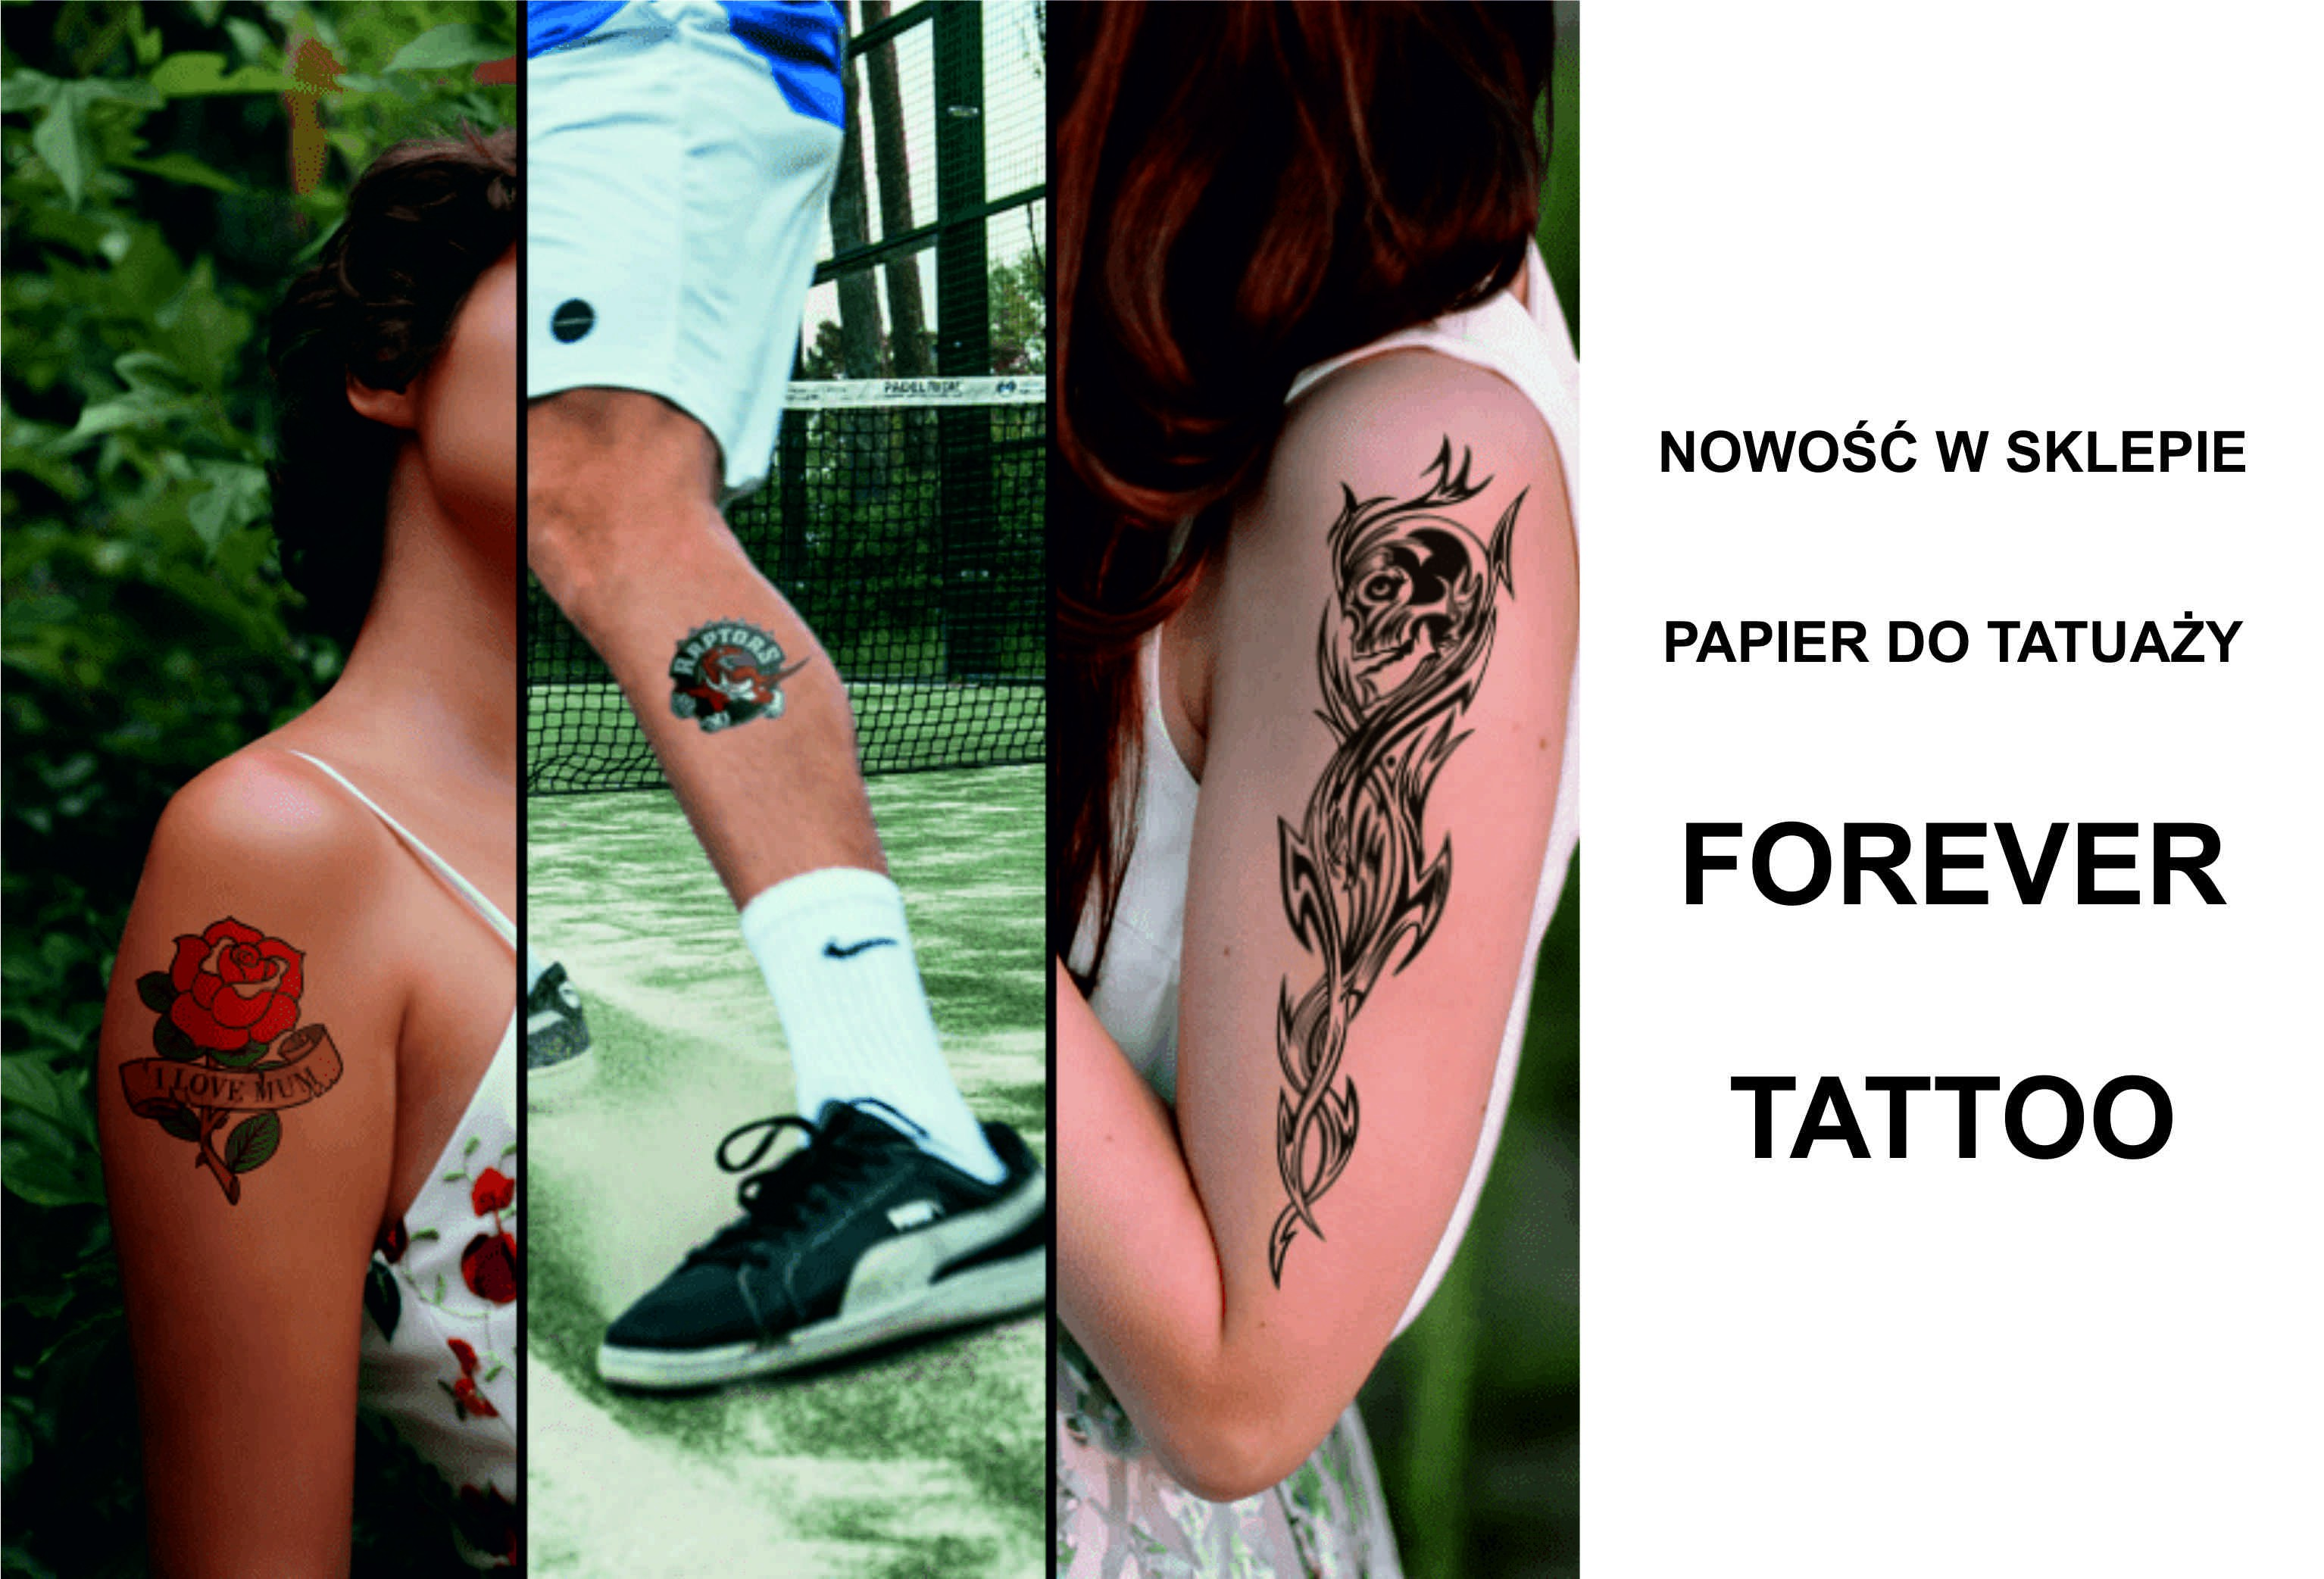 Papier do tatuaży - FOREVER TATTOO